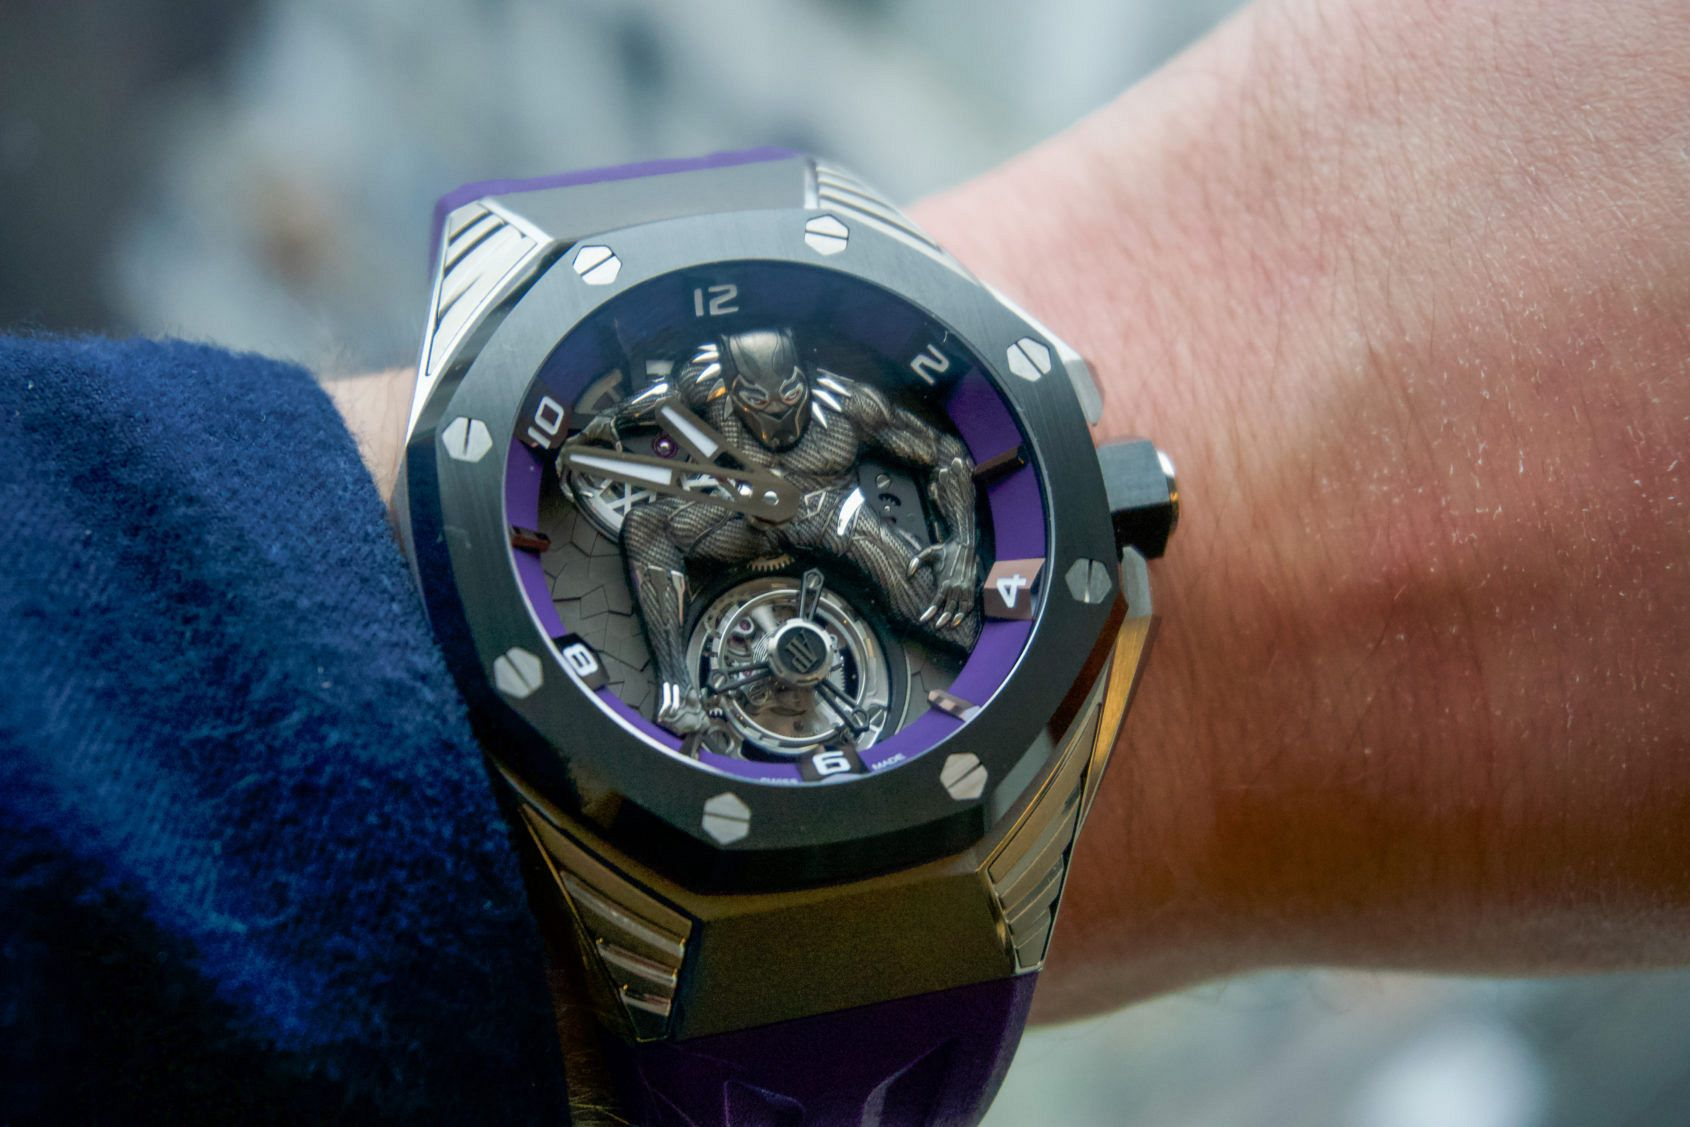 Tasting Notes: Going hands-on with the 2021 Audemars Piguet collection